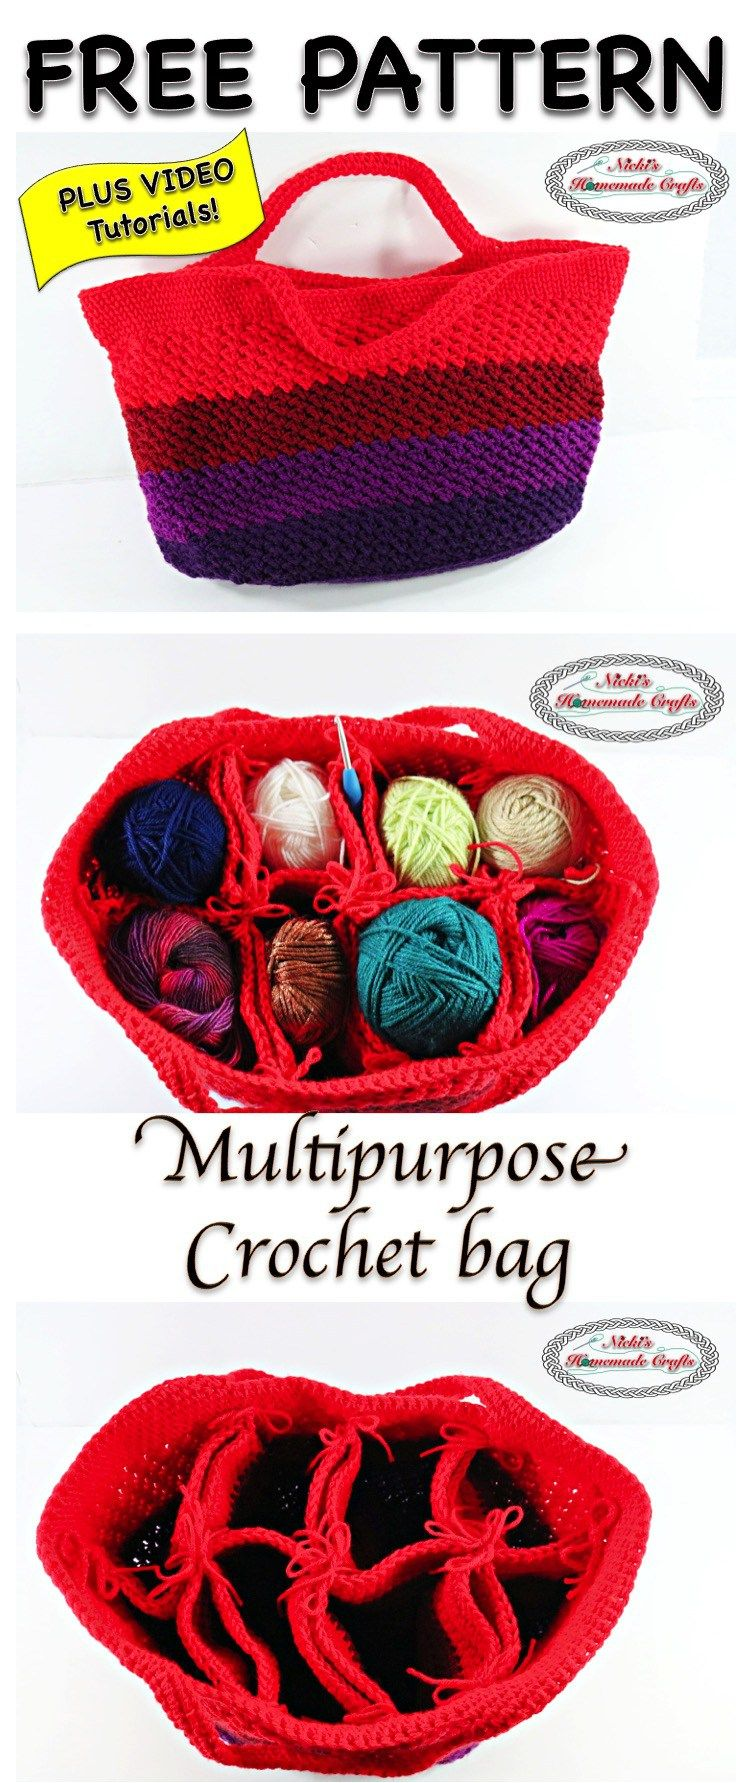 Multipurpose Crochet Bag - Free Crochet Pattern | Needle and Thread ...